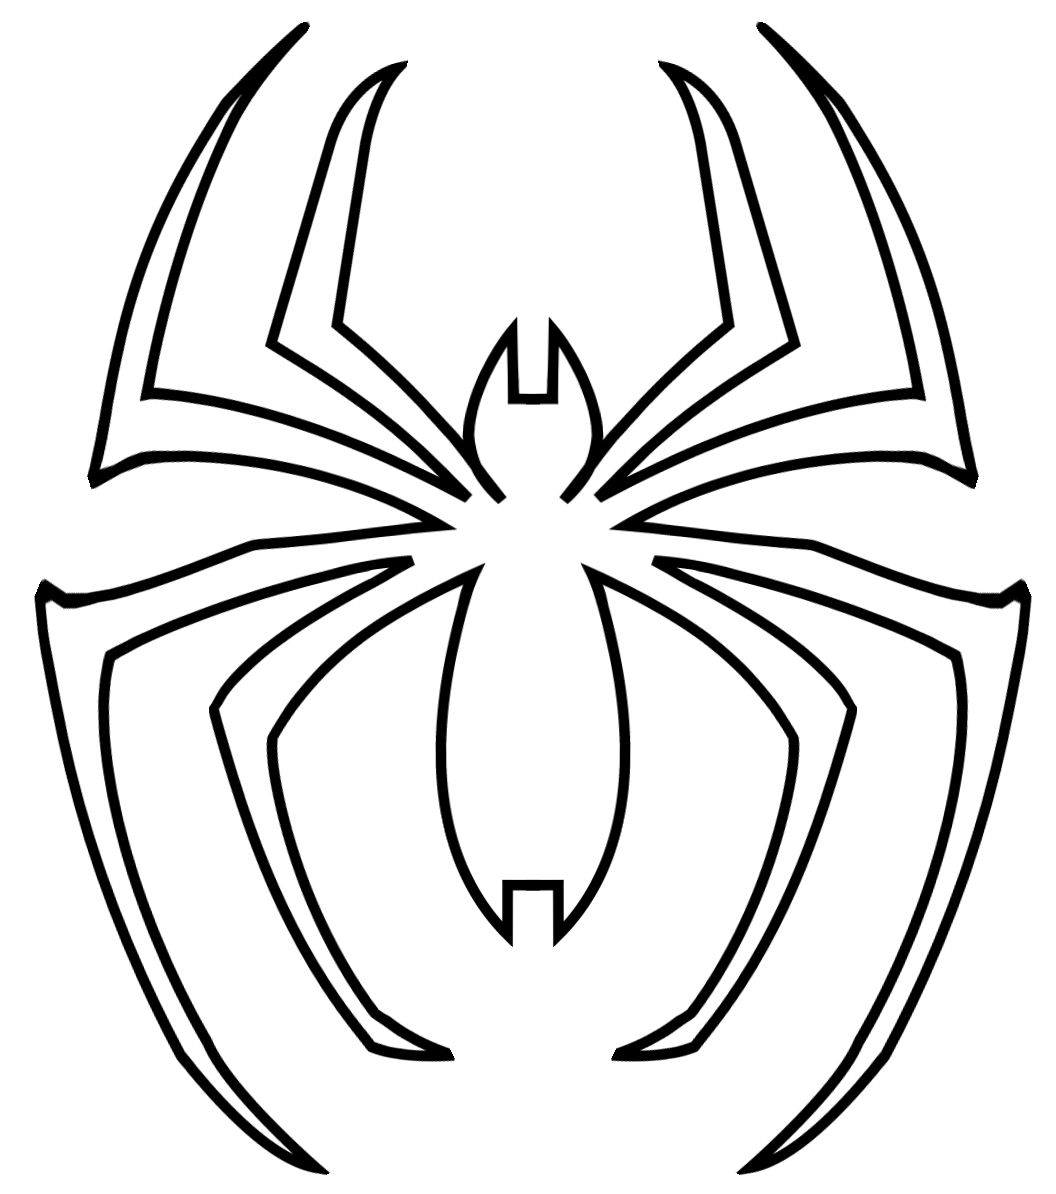 Spider clipart symbol. Man logo template comic